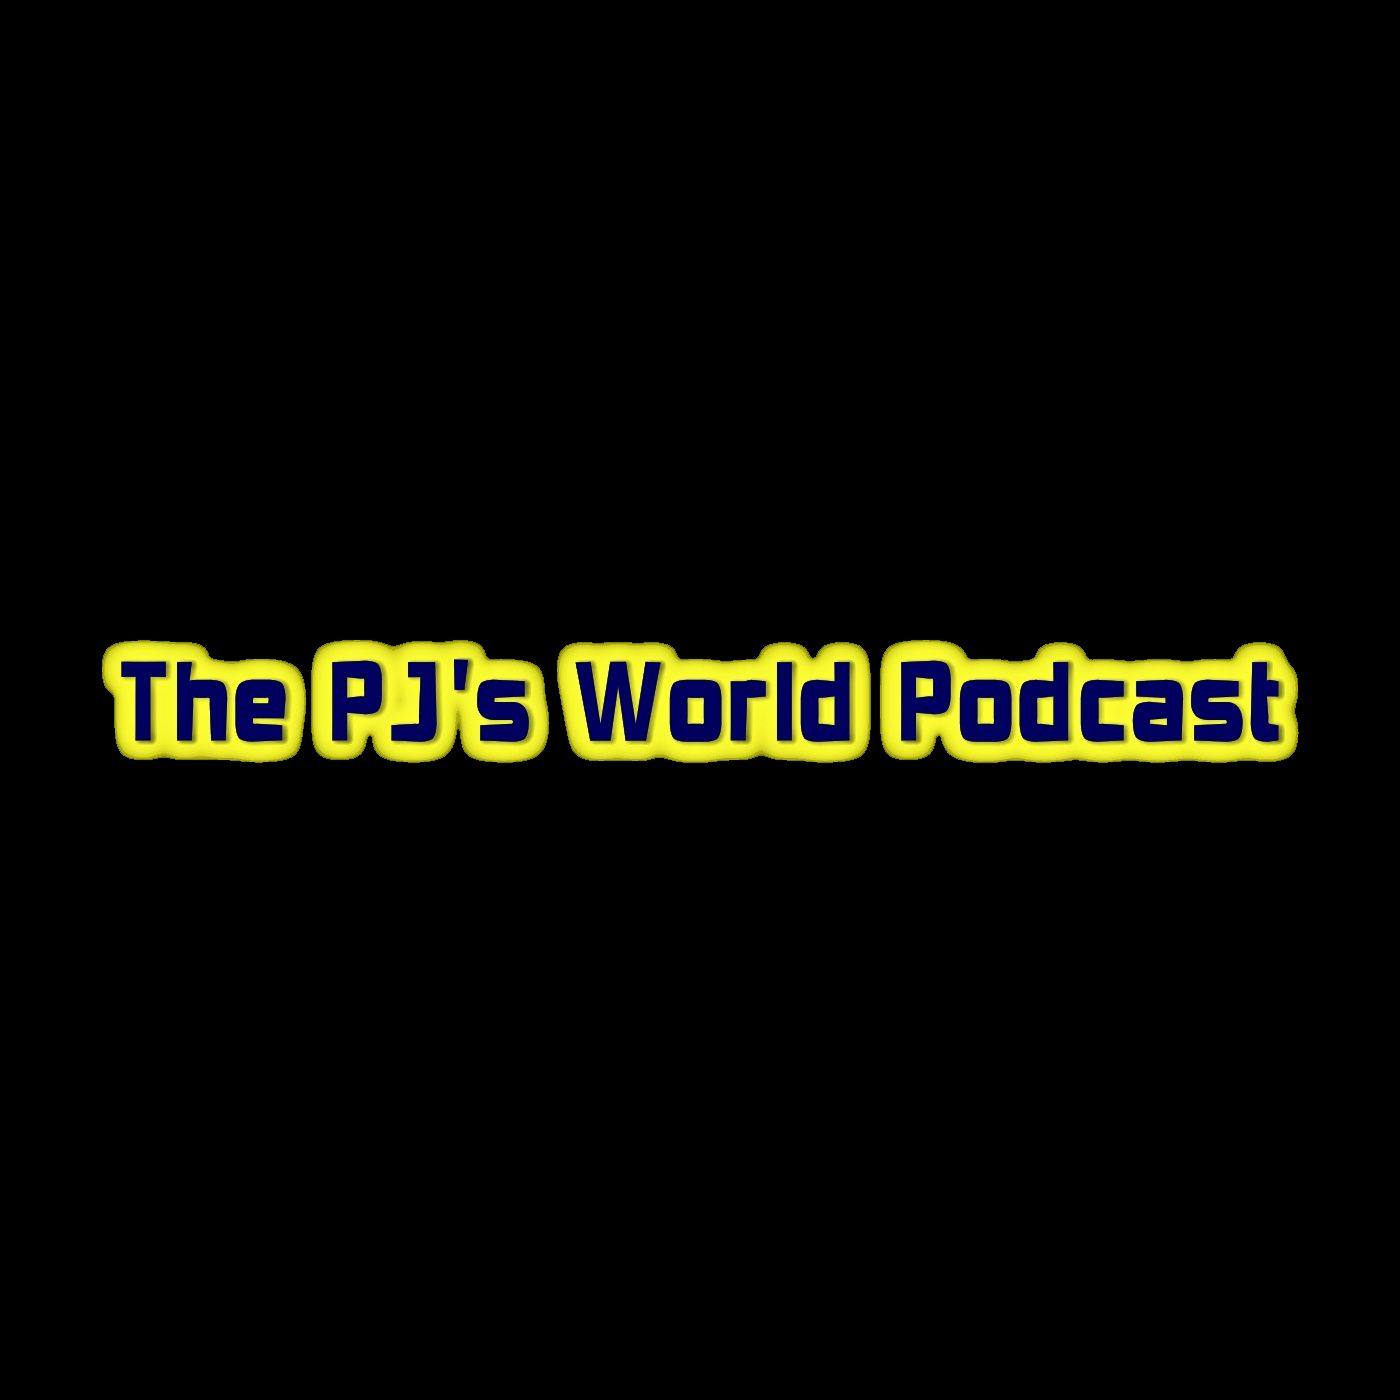 PJ's World Podcast Episode 20 - Dogs Don't Have Boobs